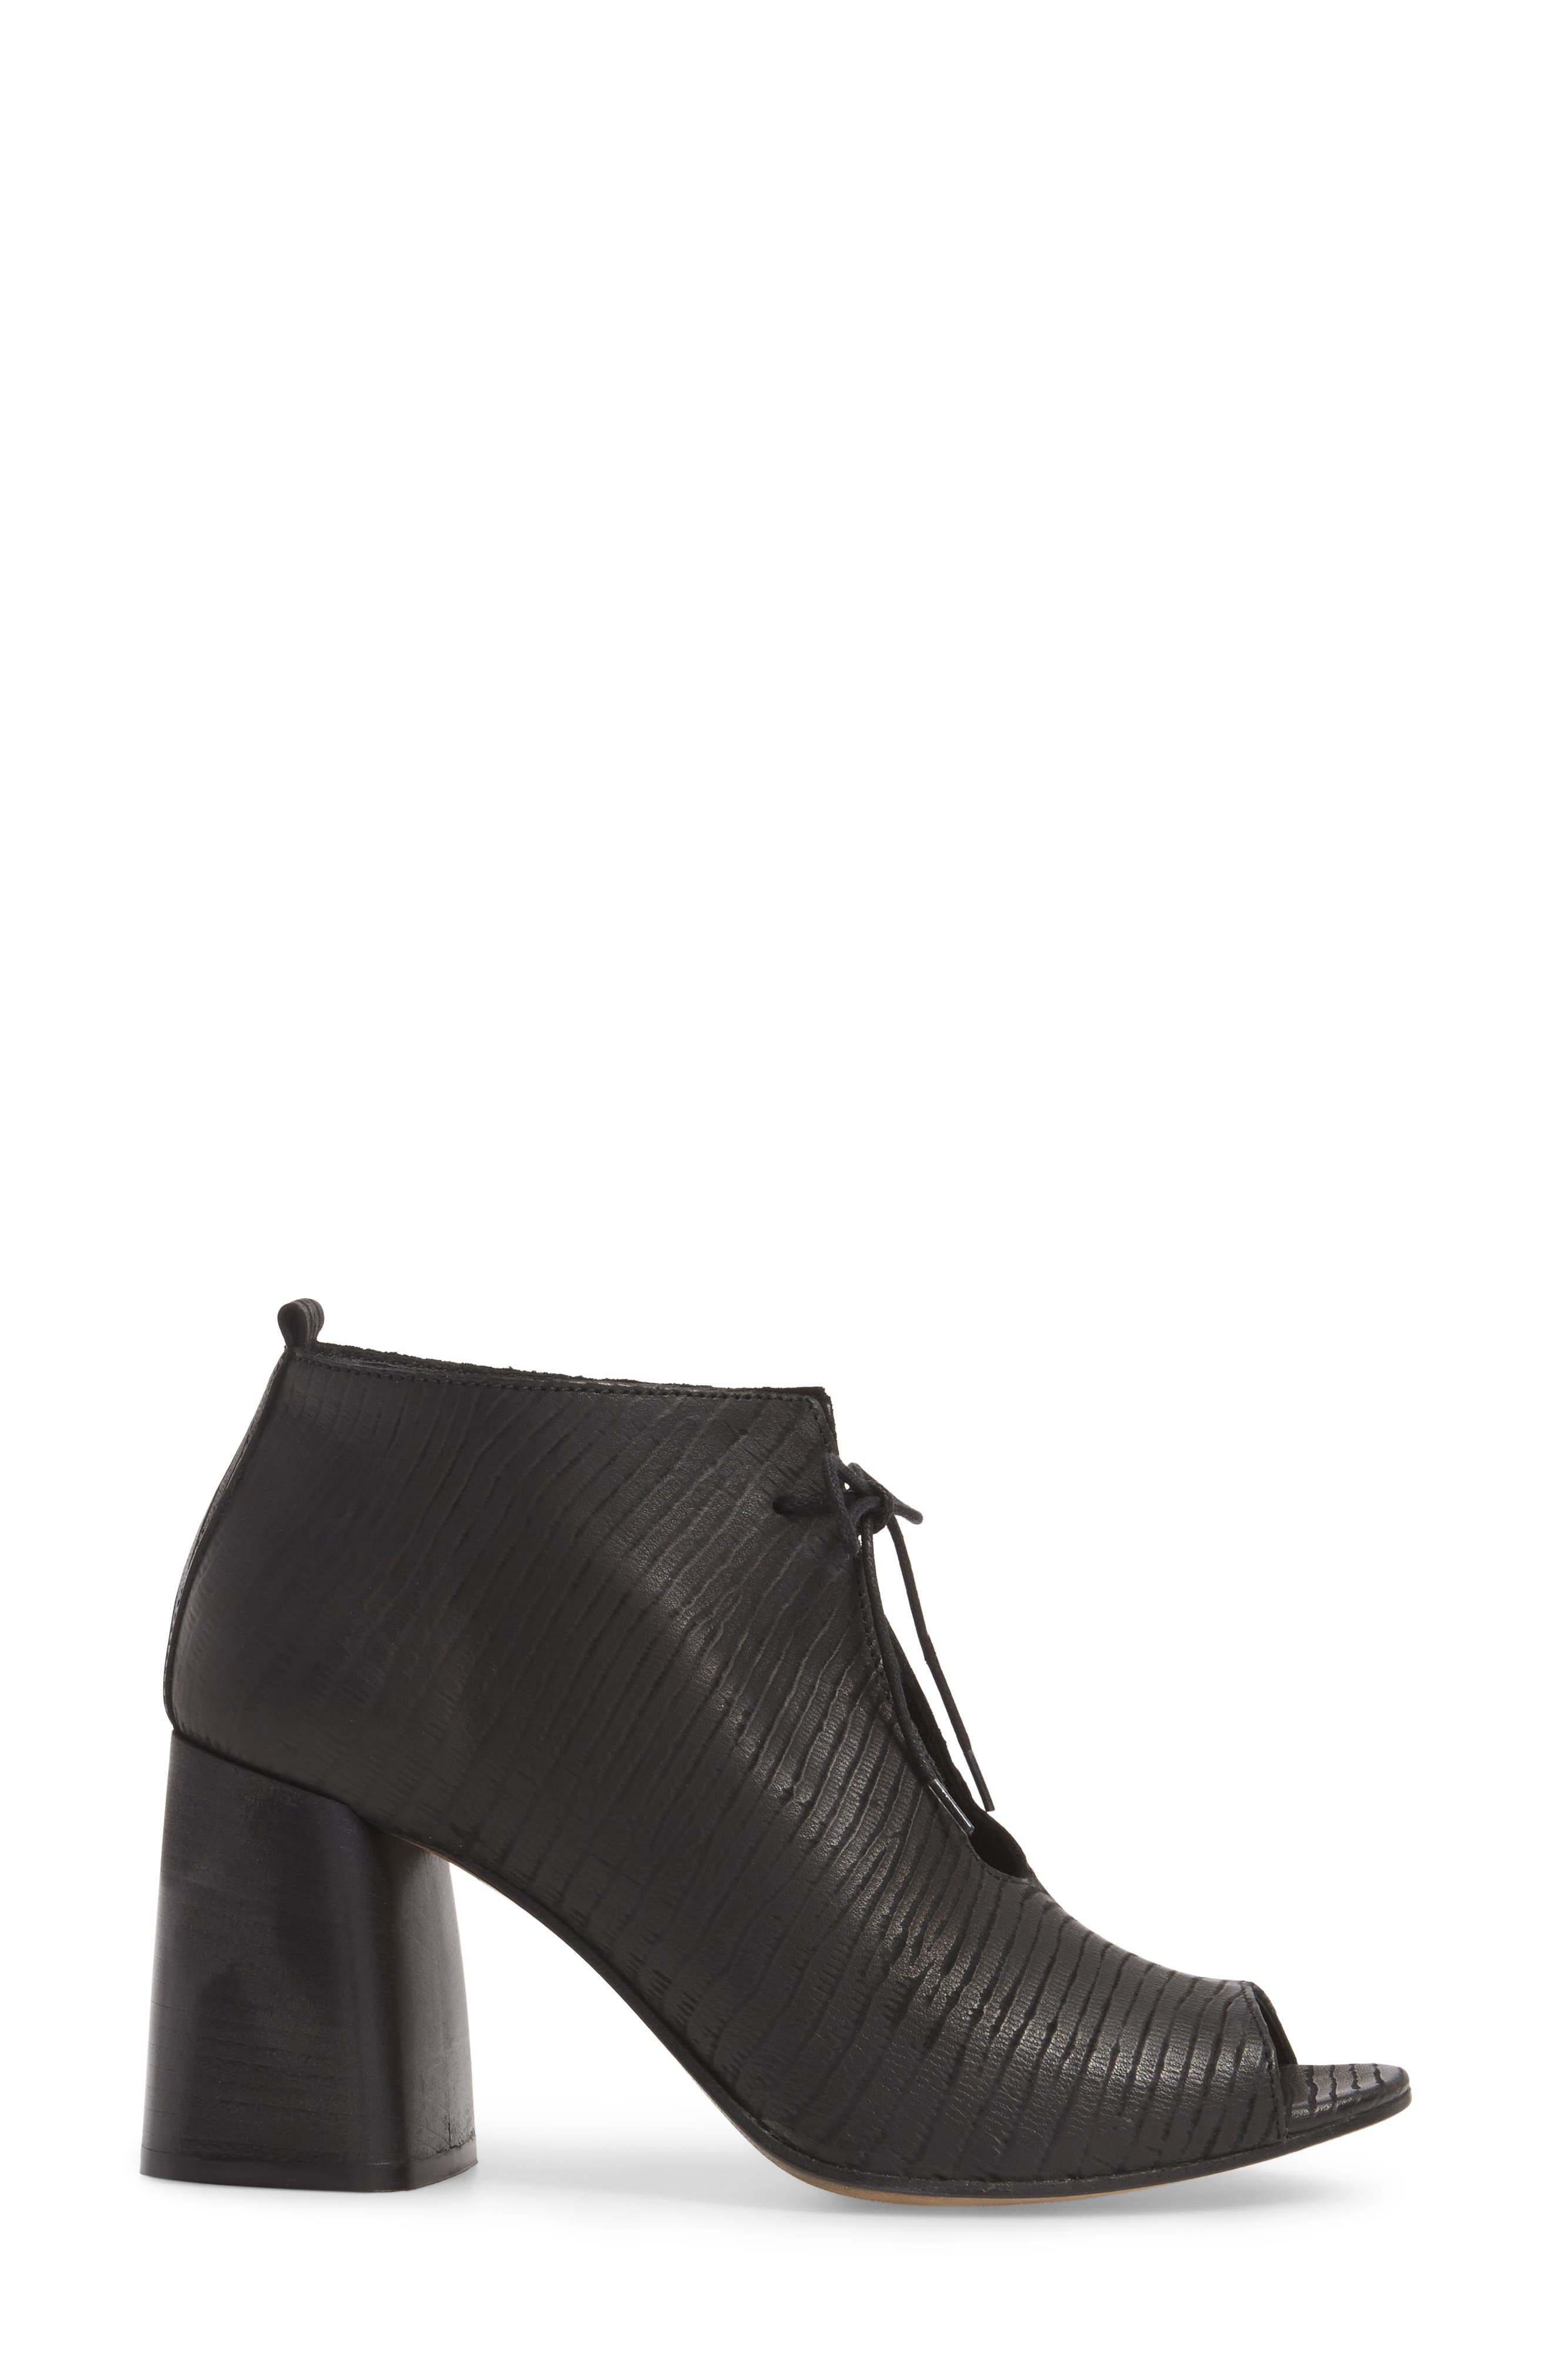 Lacey1 Bootie,                             Alternate thumbnail 3, color,                             BLACK LEATHER